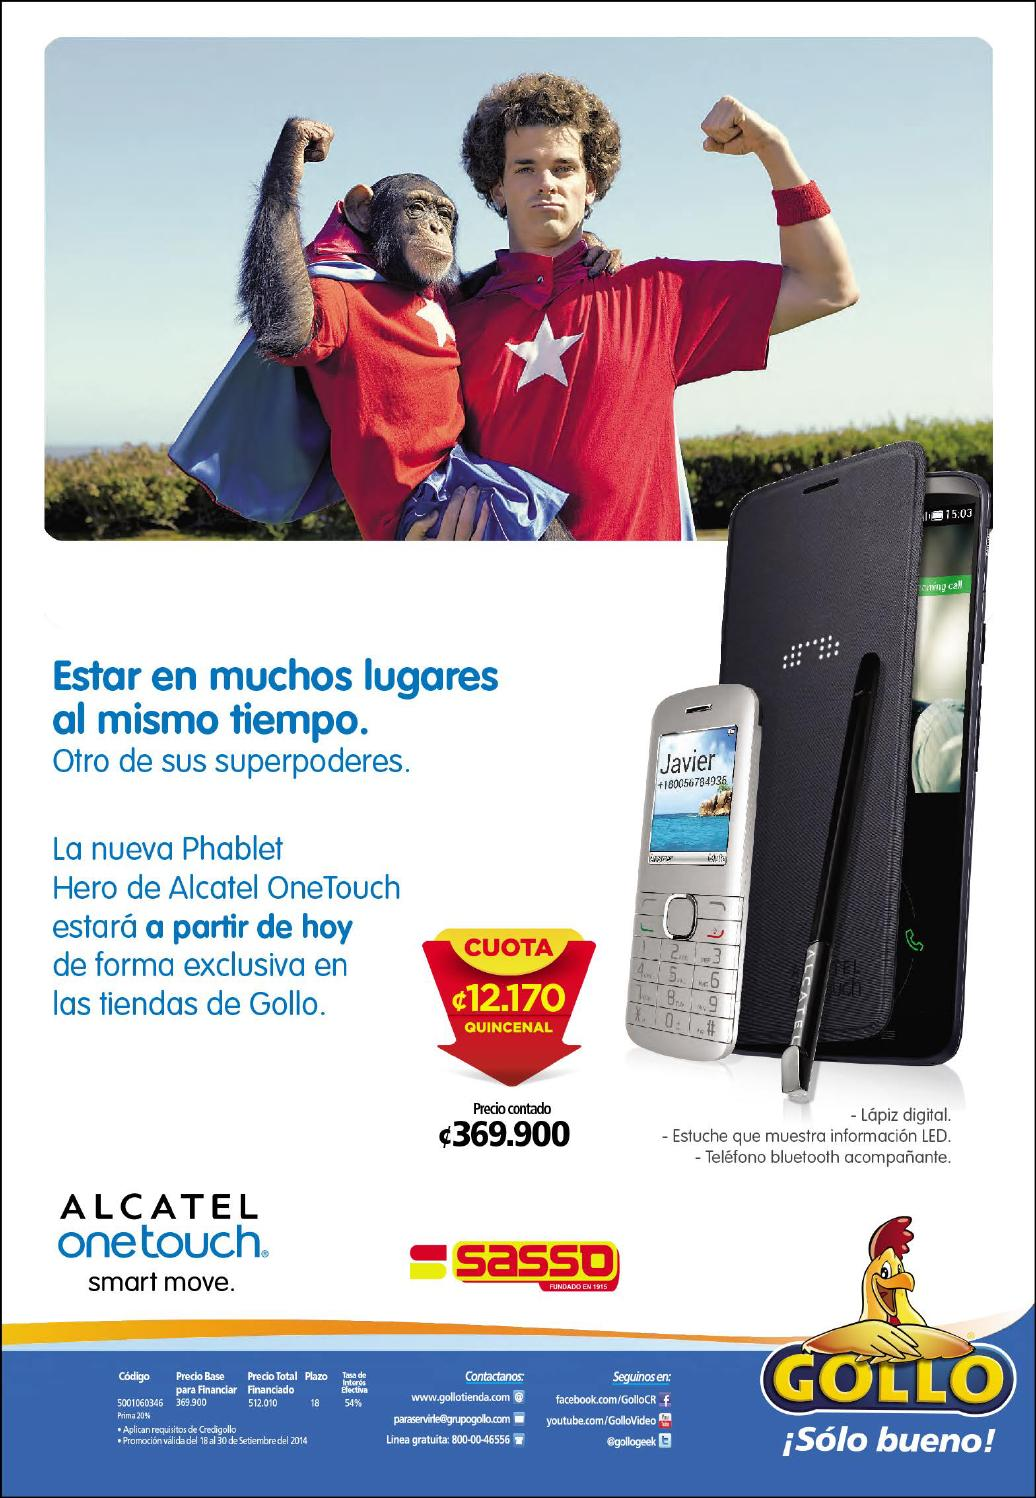 ONE TOUCH alcatel smart move GOLLO